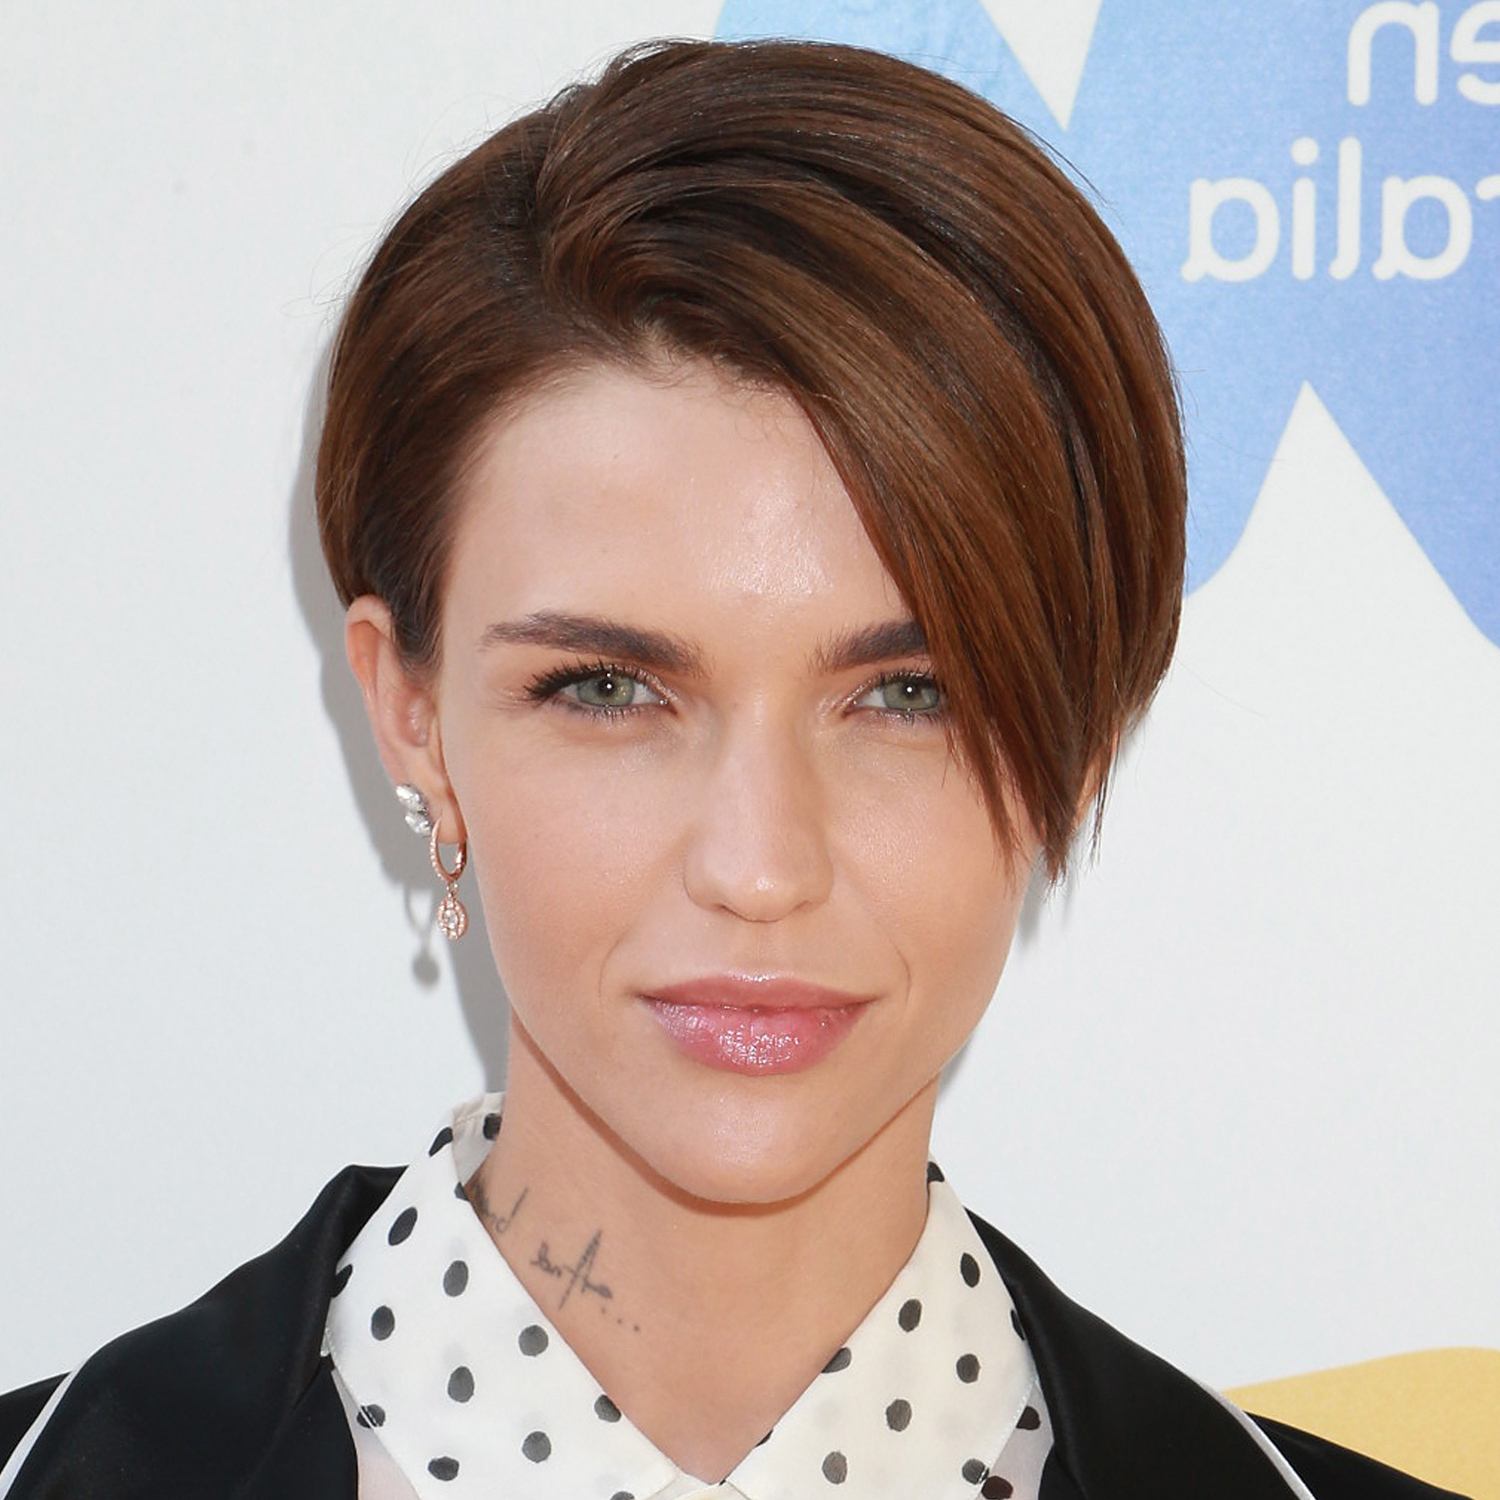 7 Of The Best Short Haircuts To Try This Summer | Beautyheaven Throughout Ruby Rose Short Hairstyles (View 24 of 25)